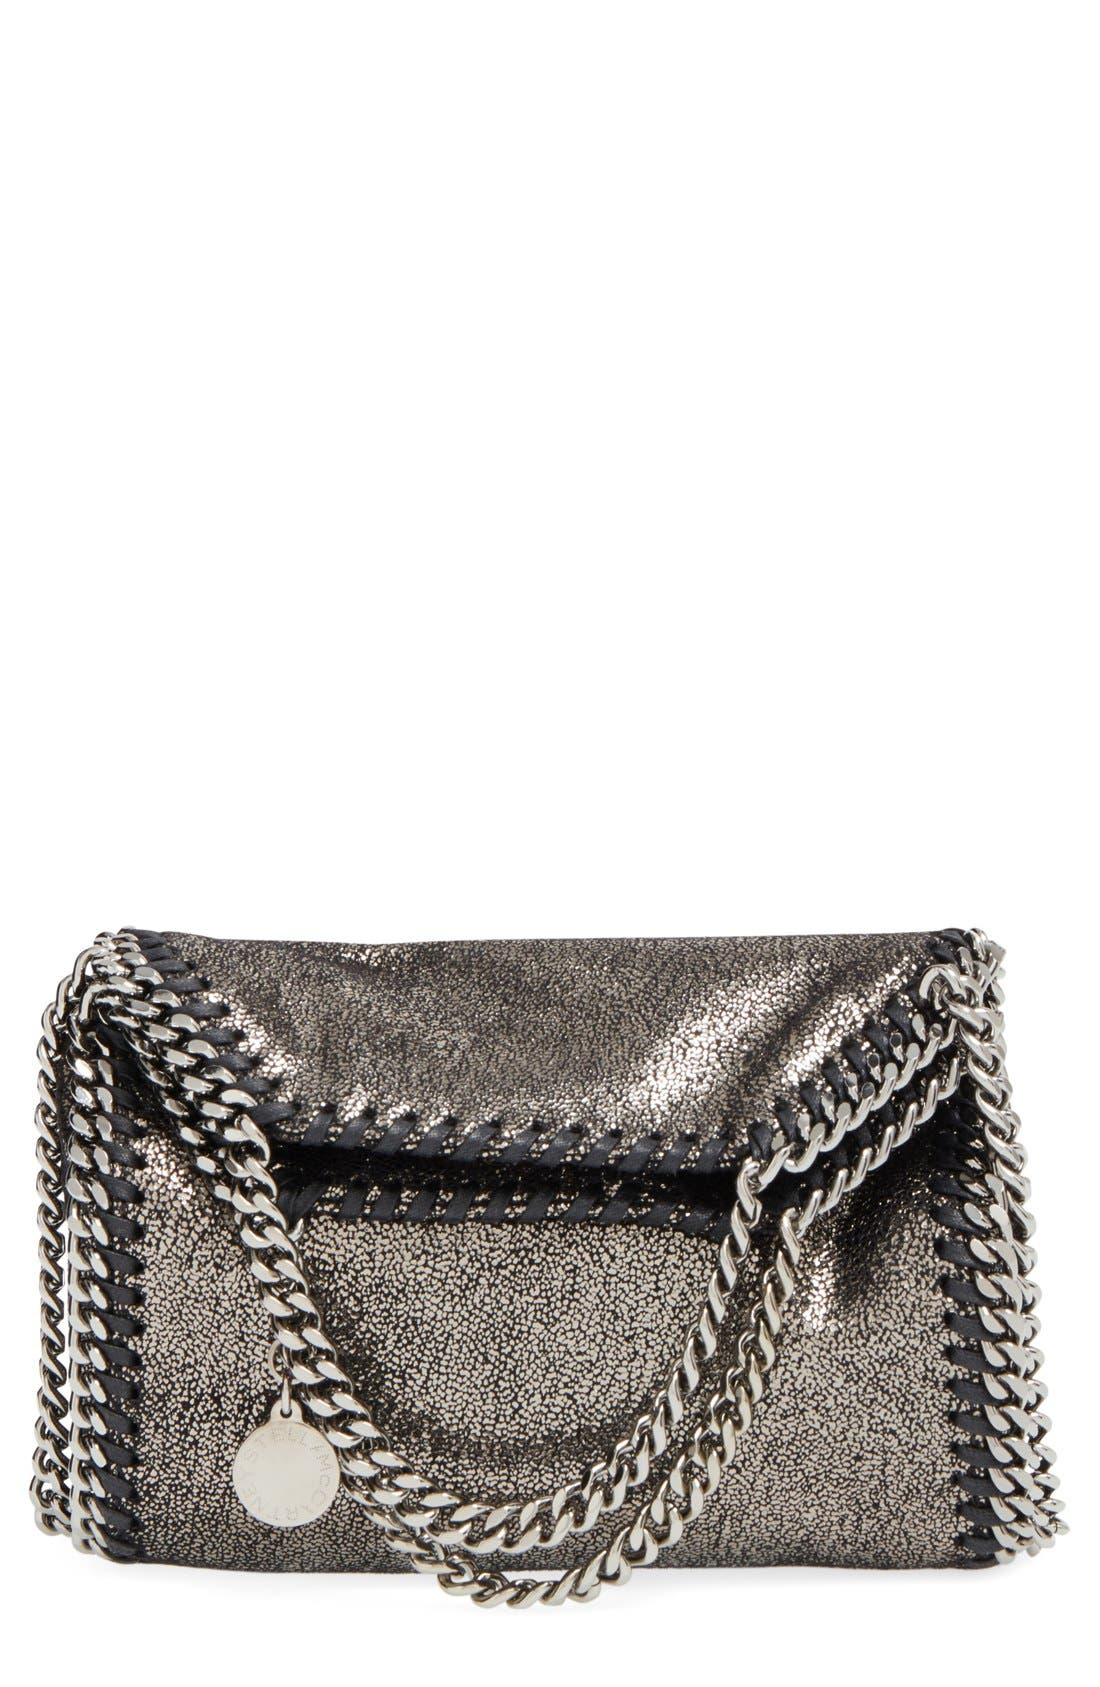 Stella McCartney 'Tiny Falabella' Metallic Faux Leather Crossbody Bag